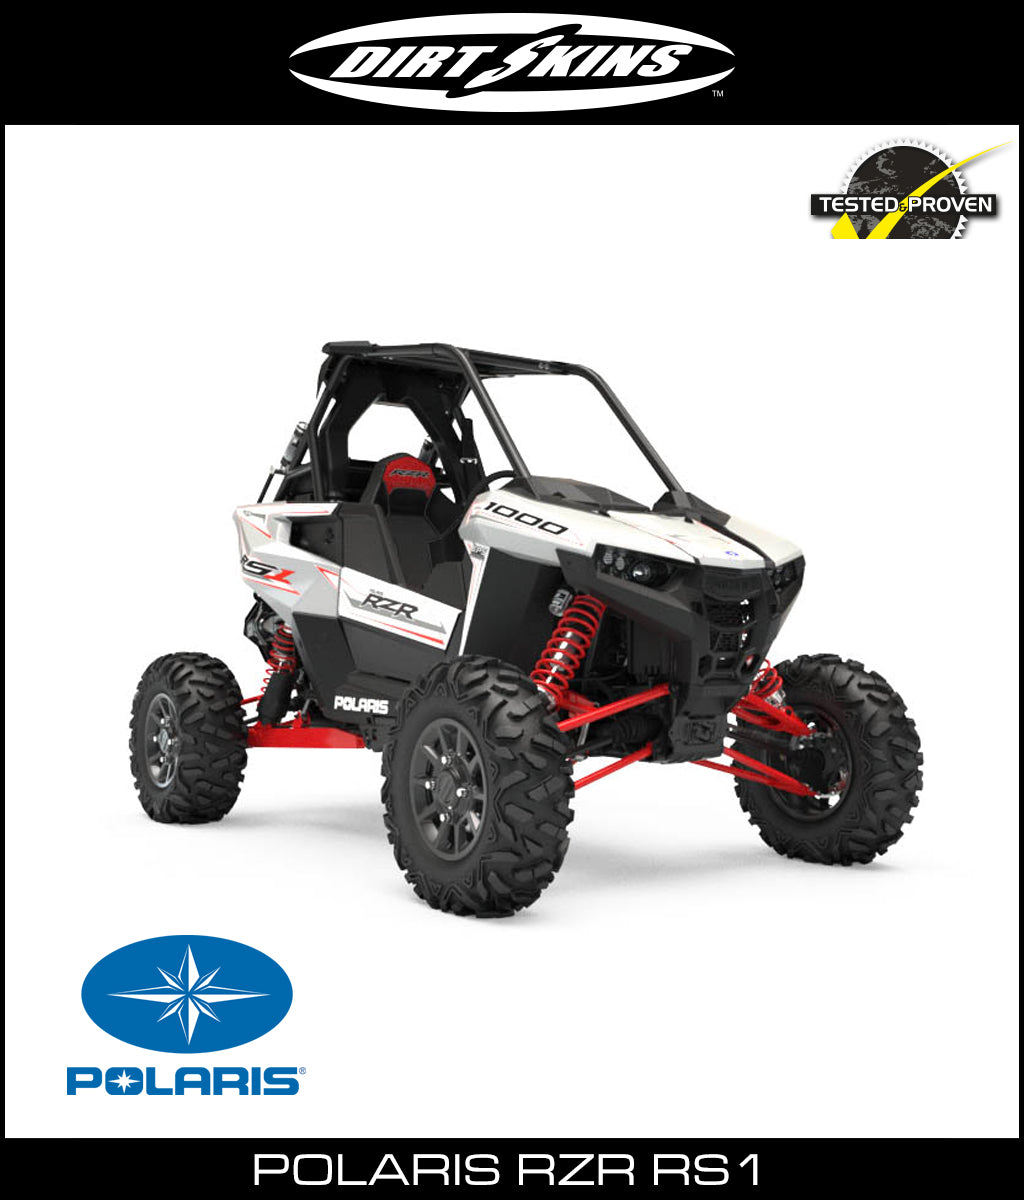 Dirtskins Polaris RZR RS1 Shock Covers